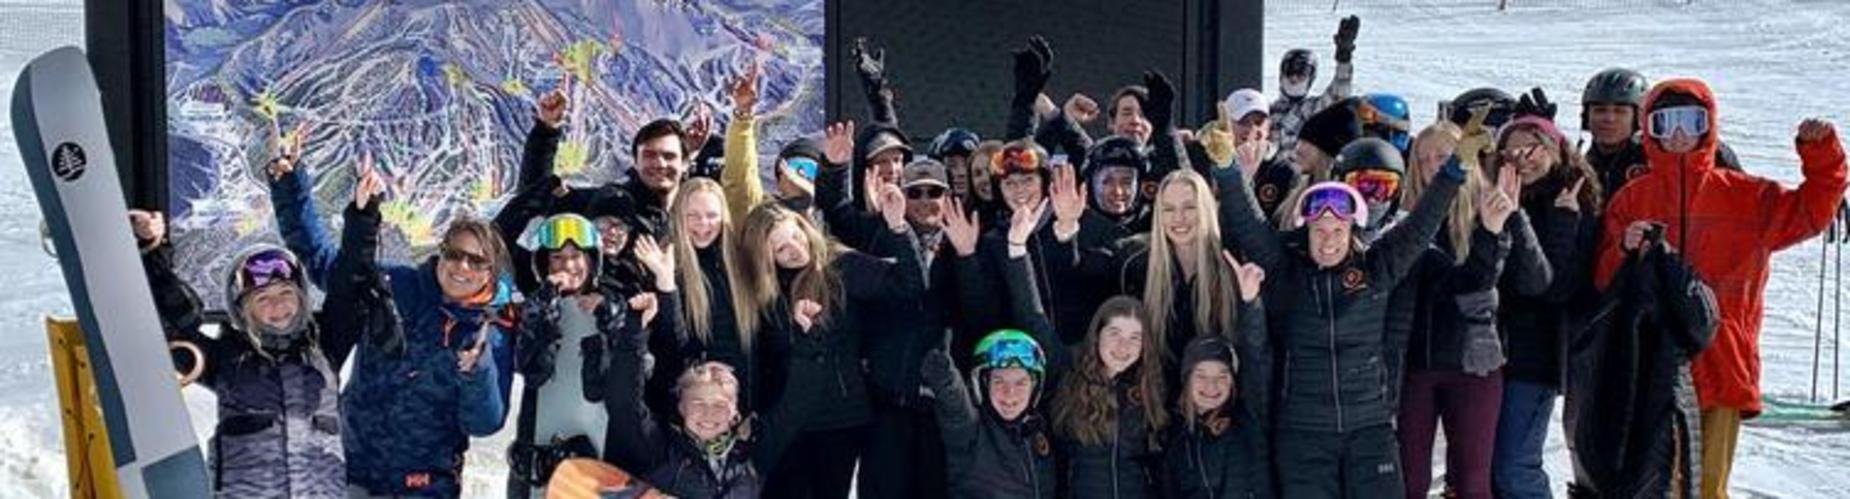 Students posing for picture in snow